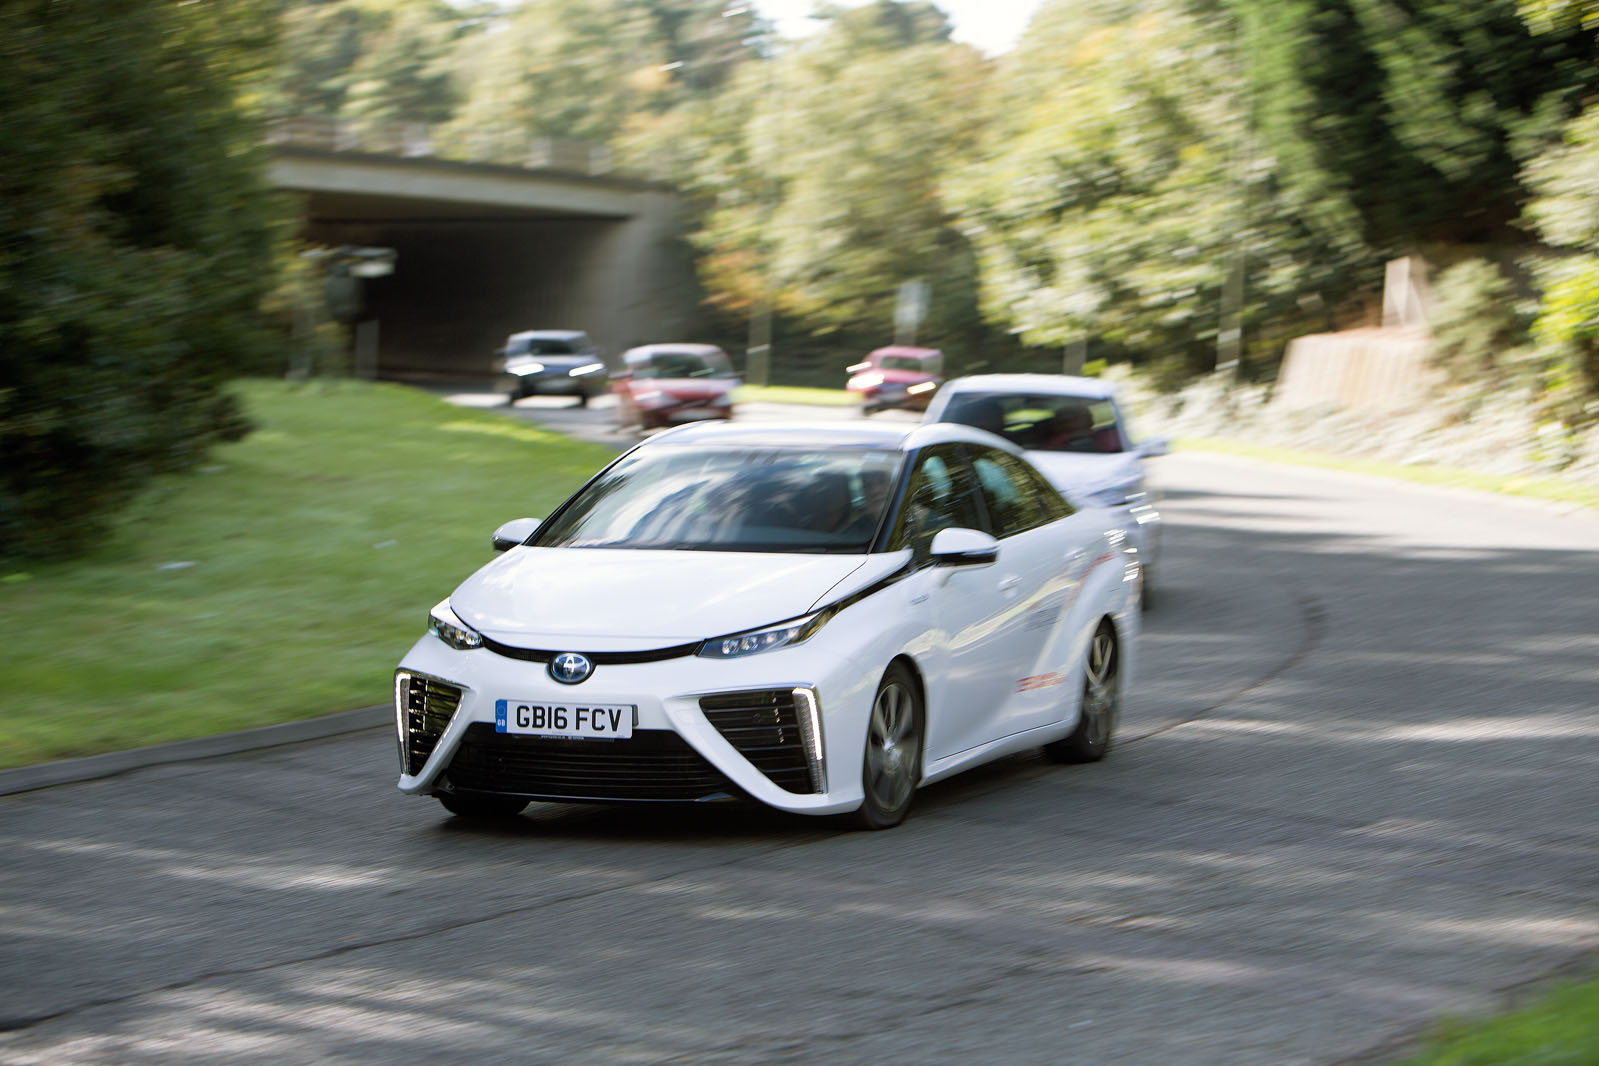 Hydrogen Cars: Does The Toyota Mirai Prove Hydrogen Power Has A Future